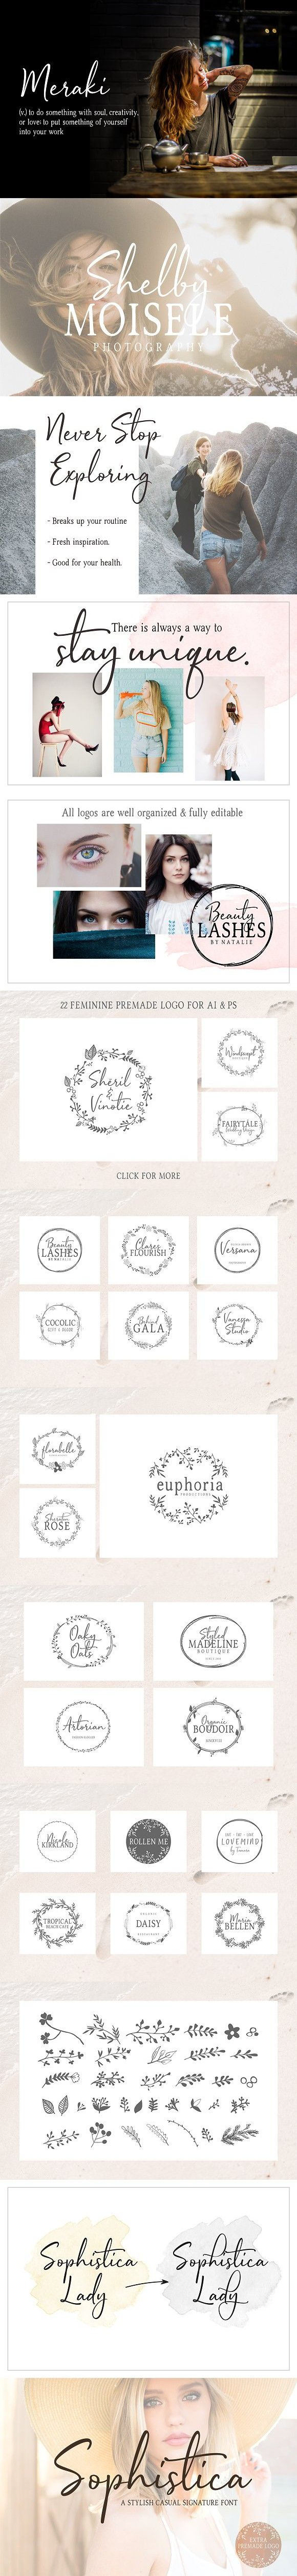 Sophistica -Stylish Font Duo  Extras #lovelyfont #fashion